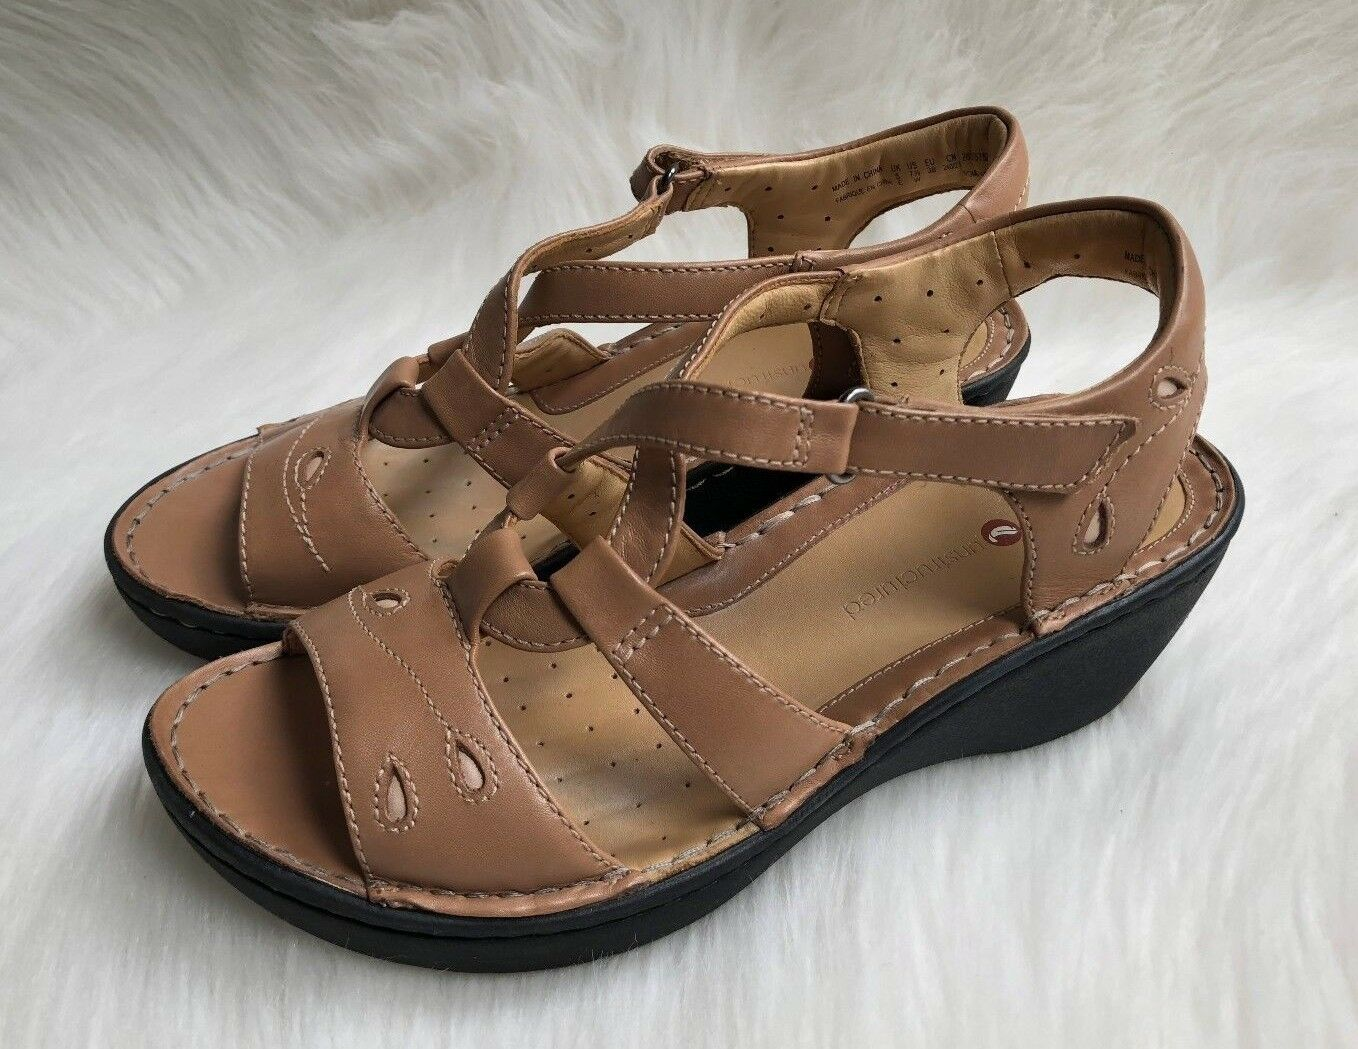 Women's Clarks Artisan Unstructured Tan/Beige Leather Wedge Sandals Sz 7.5W